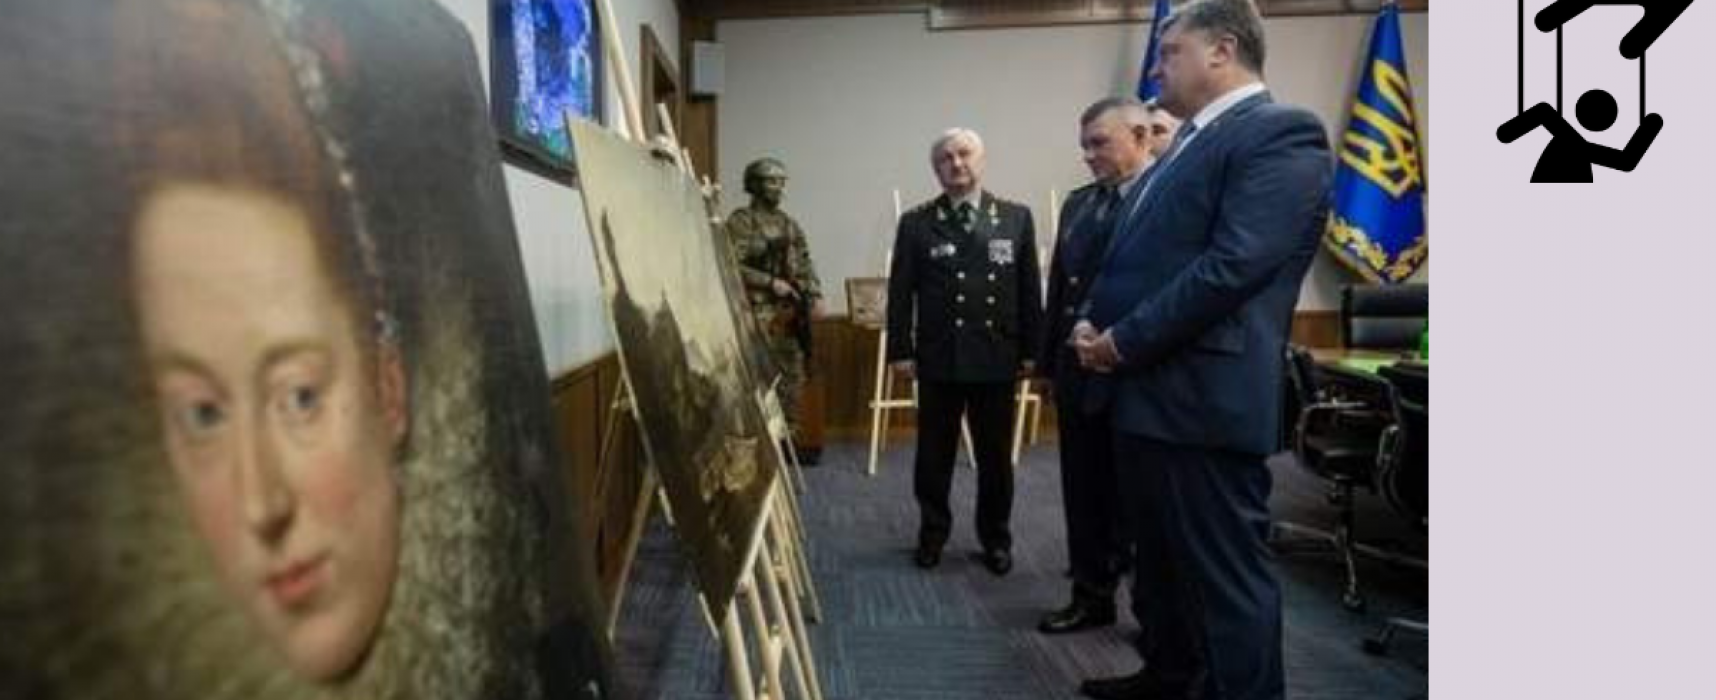 Manipulation: President Poroshenko Deprived of Verona Honorary Citizen Status because of Stolen Paintings